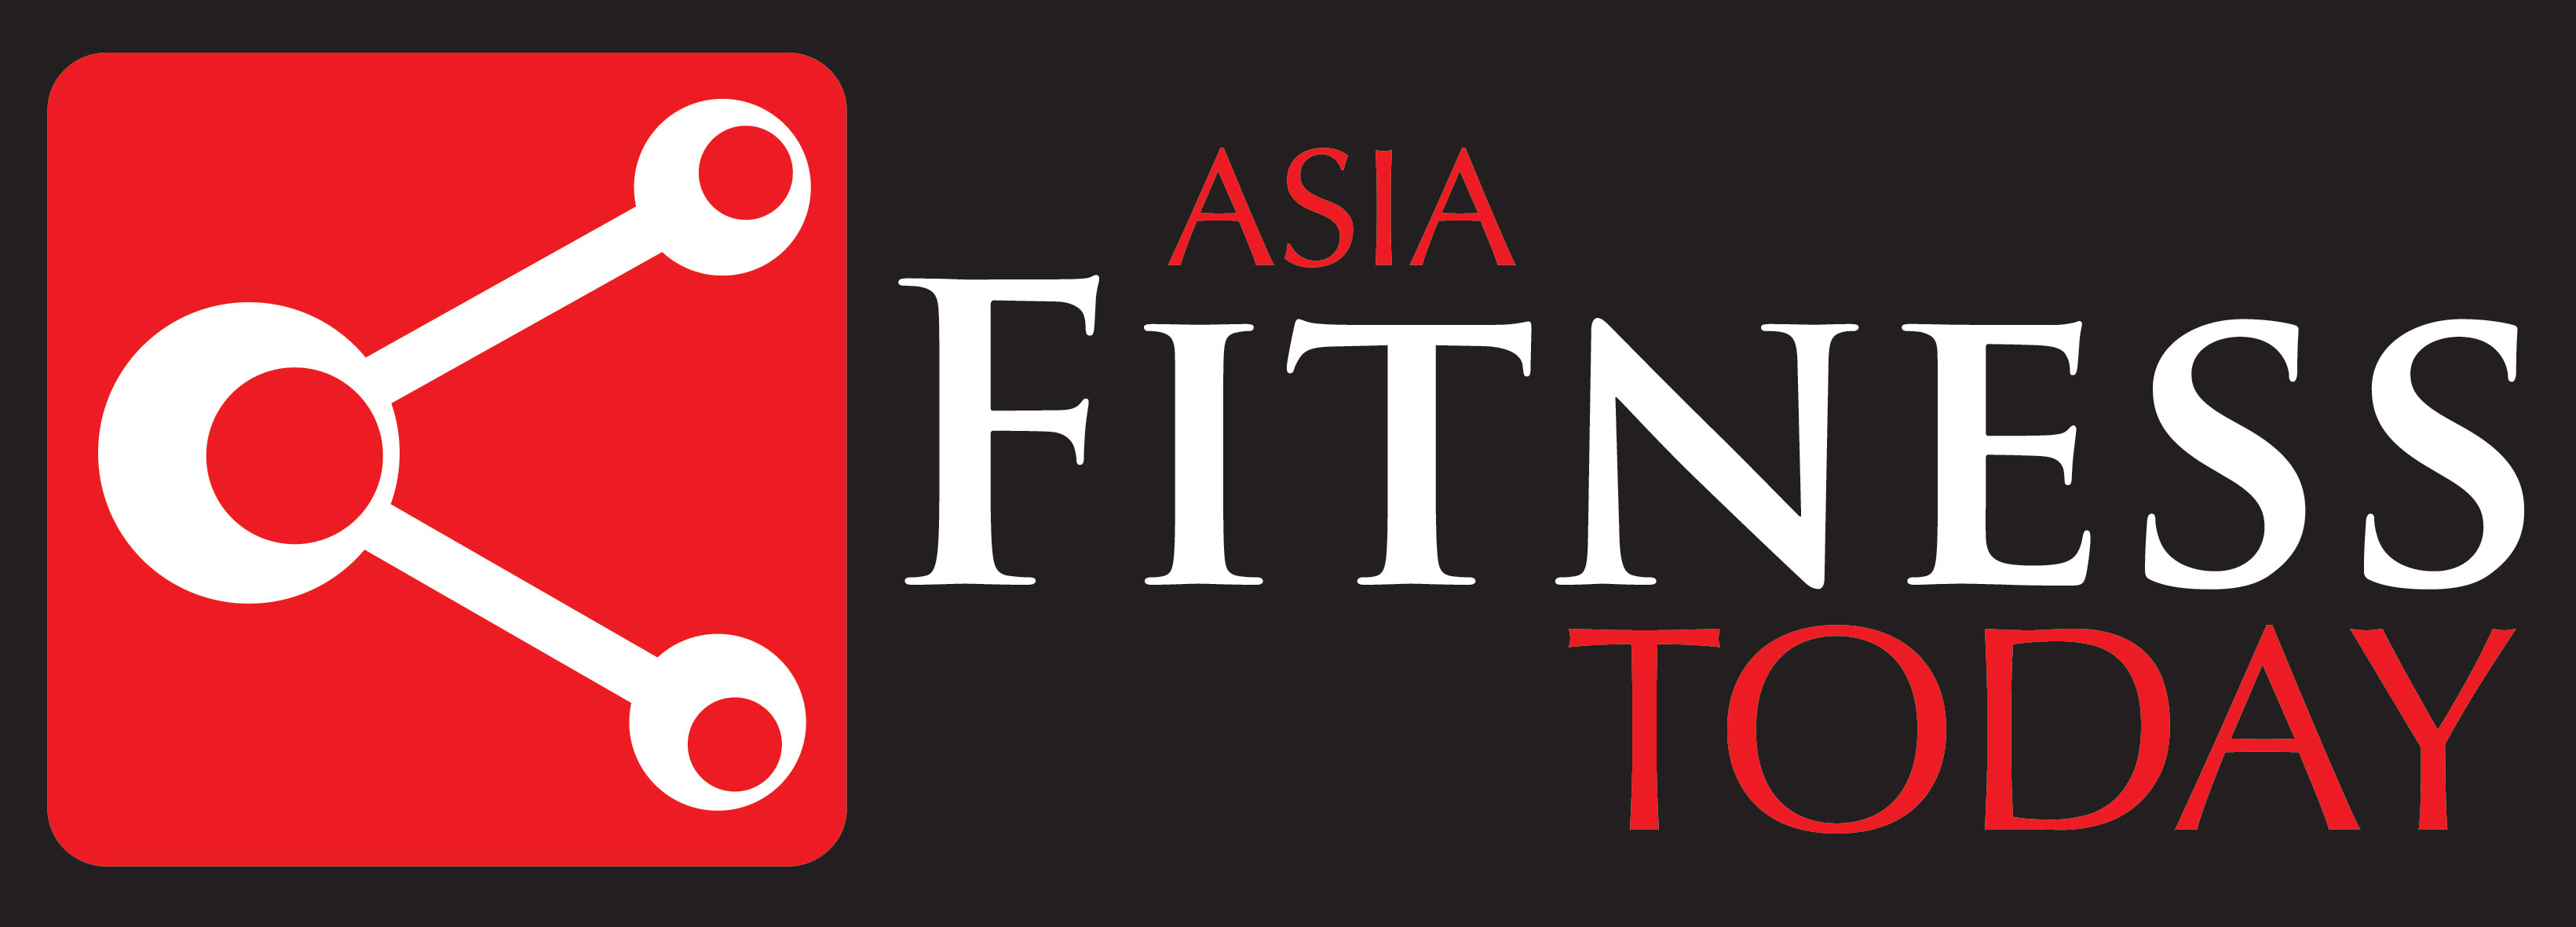 AsiaFitnessToday.com